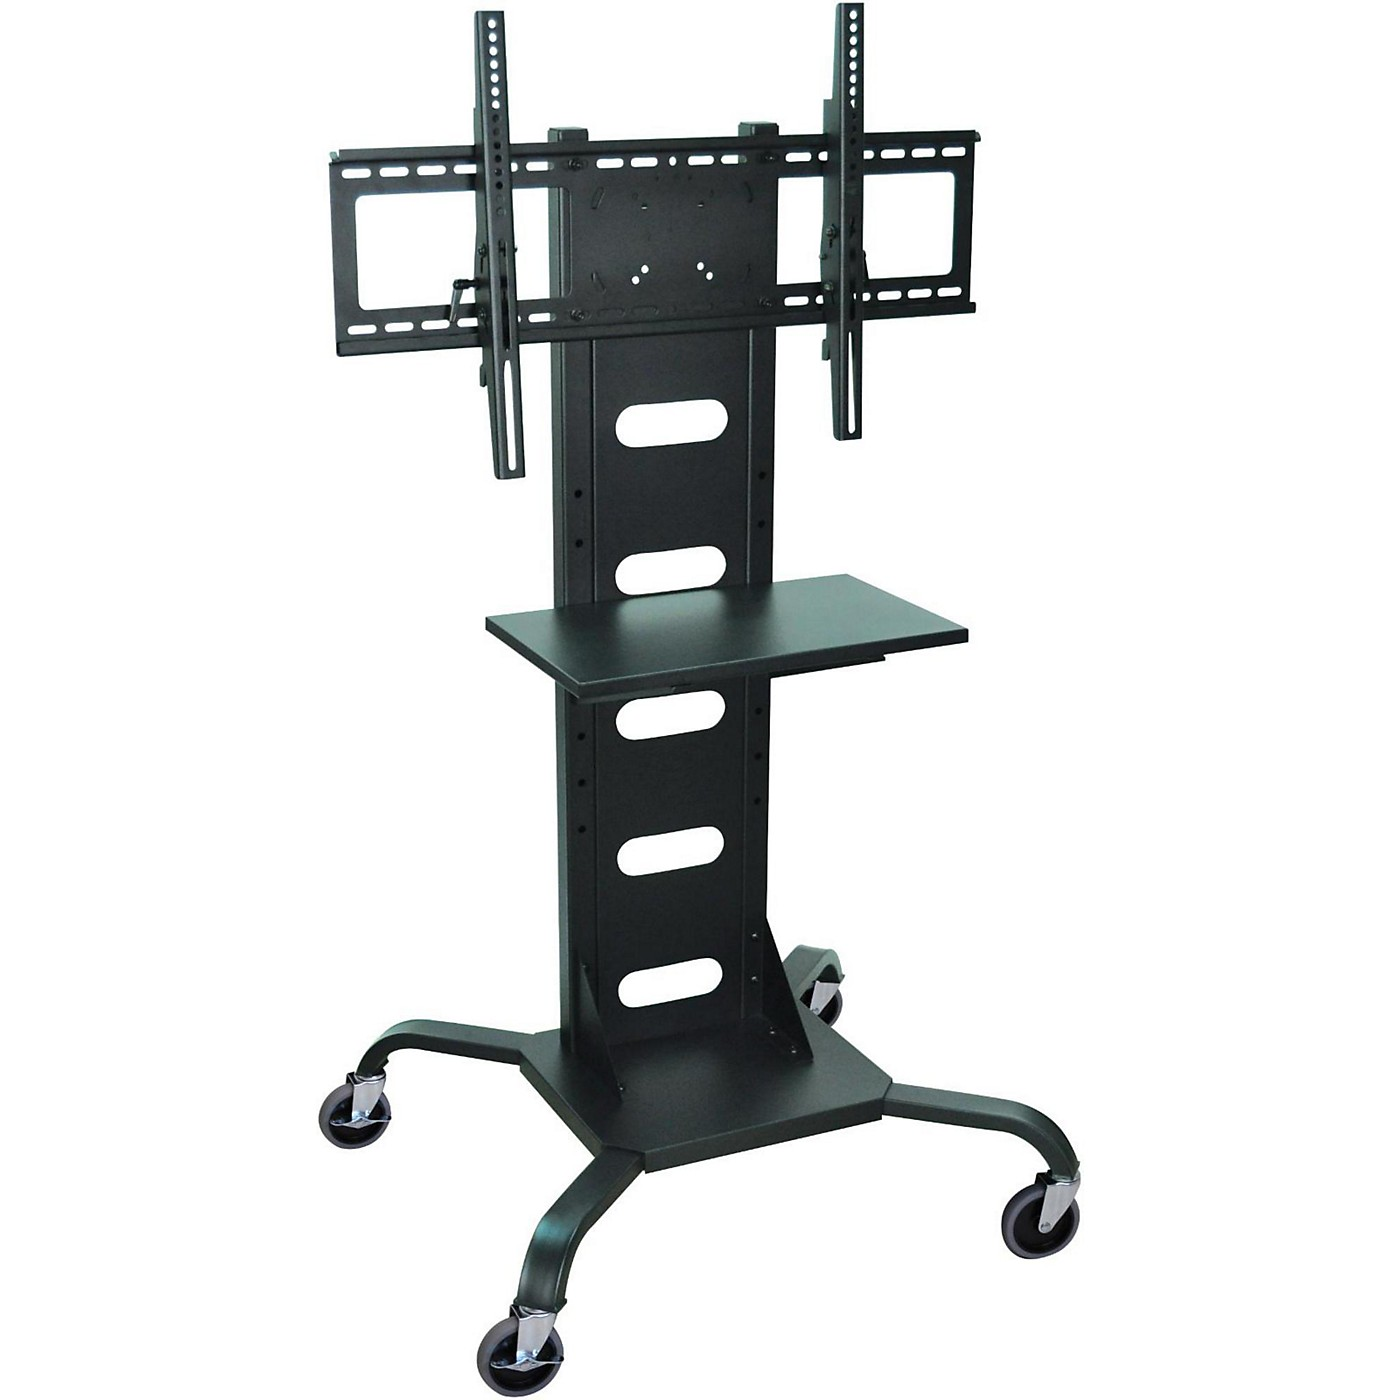 H. Wilson Mobile Flat Panel Display Stand With All-Steel Frame thumbnail